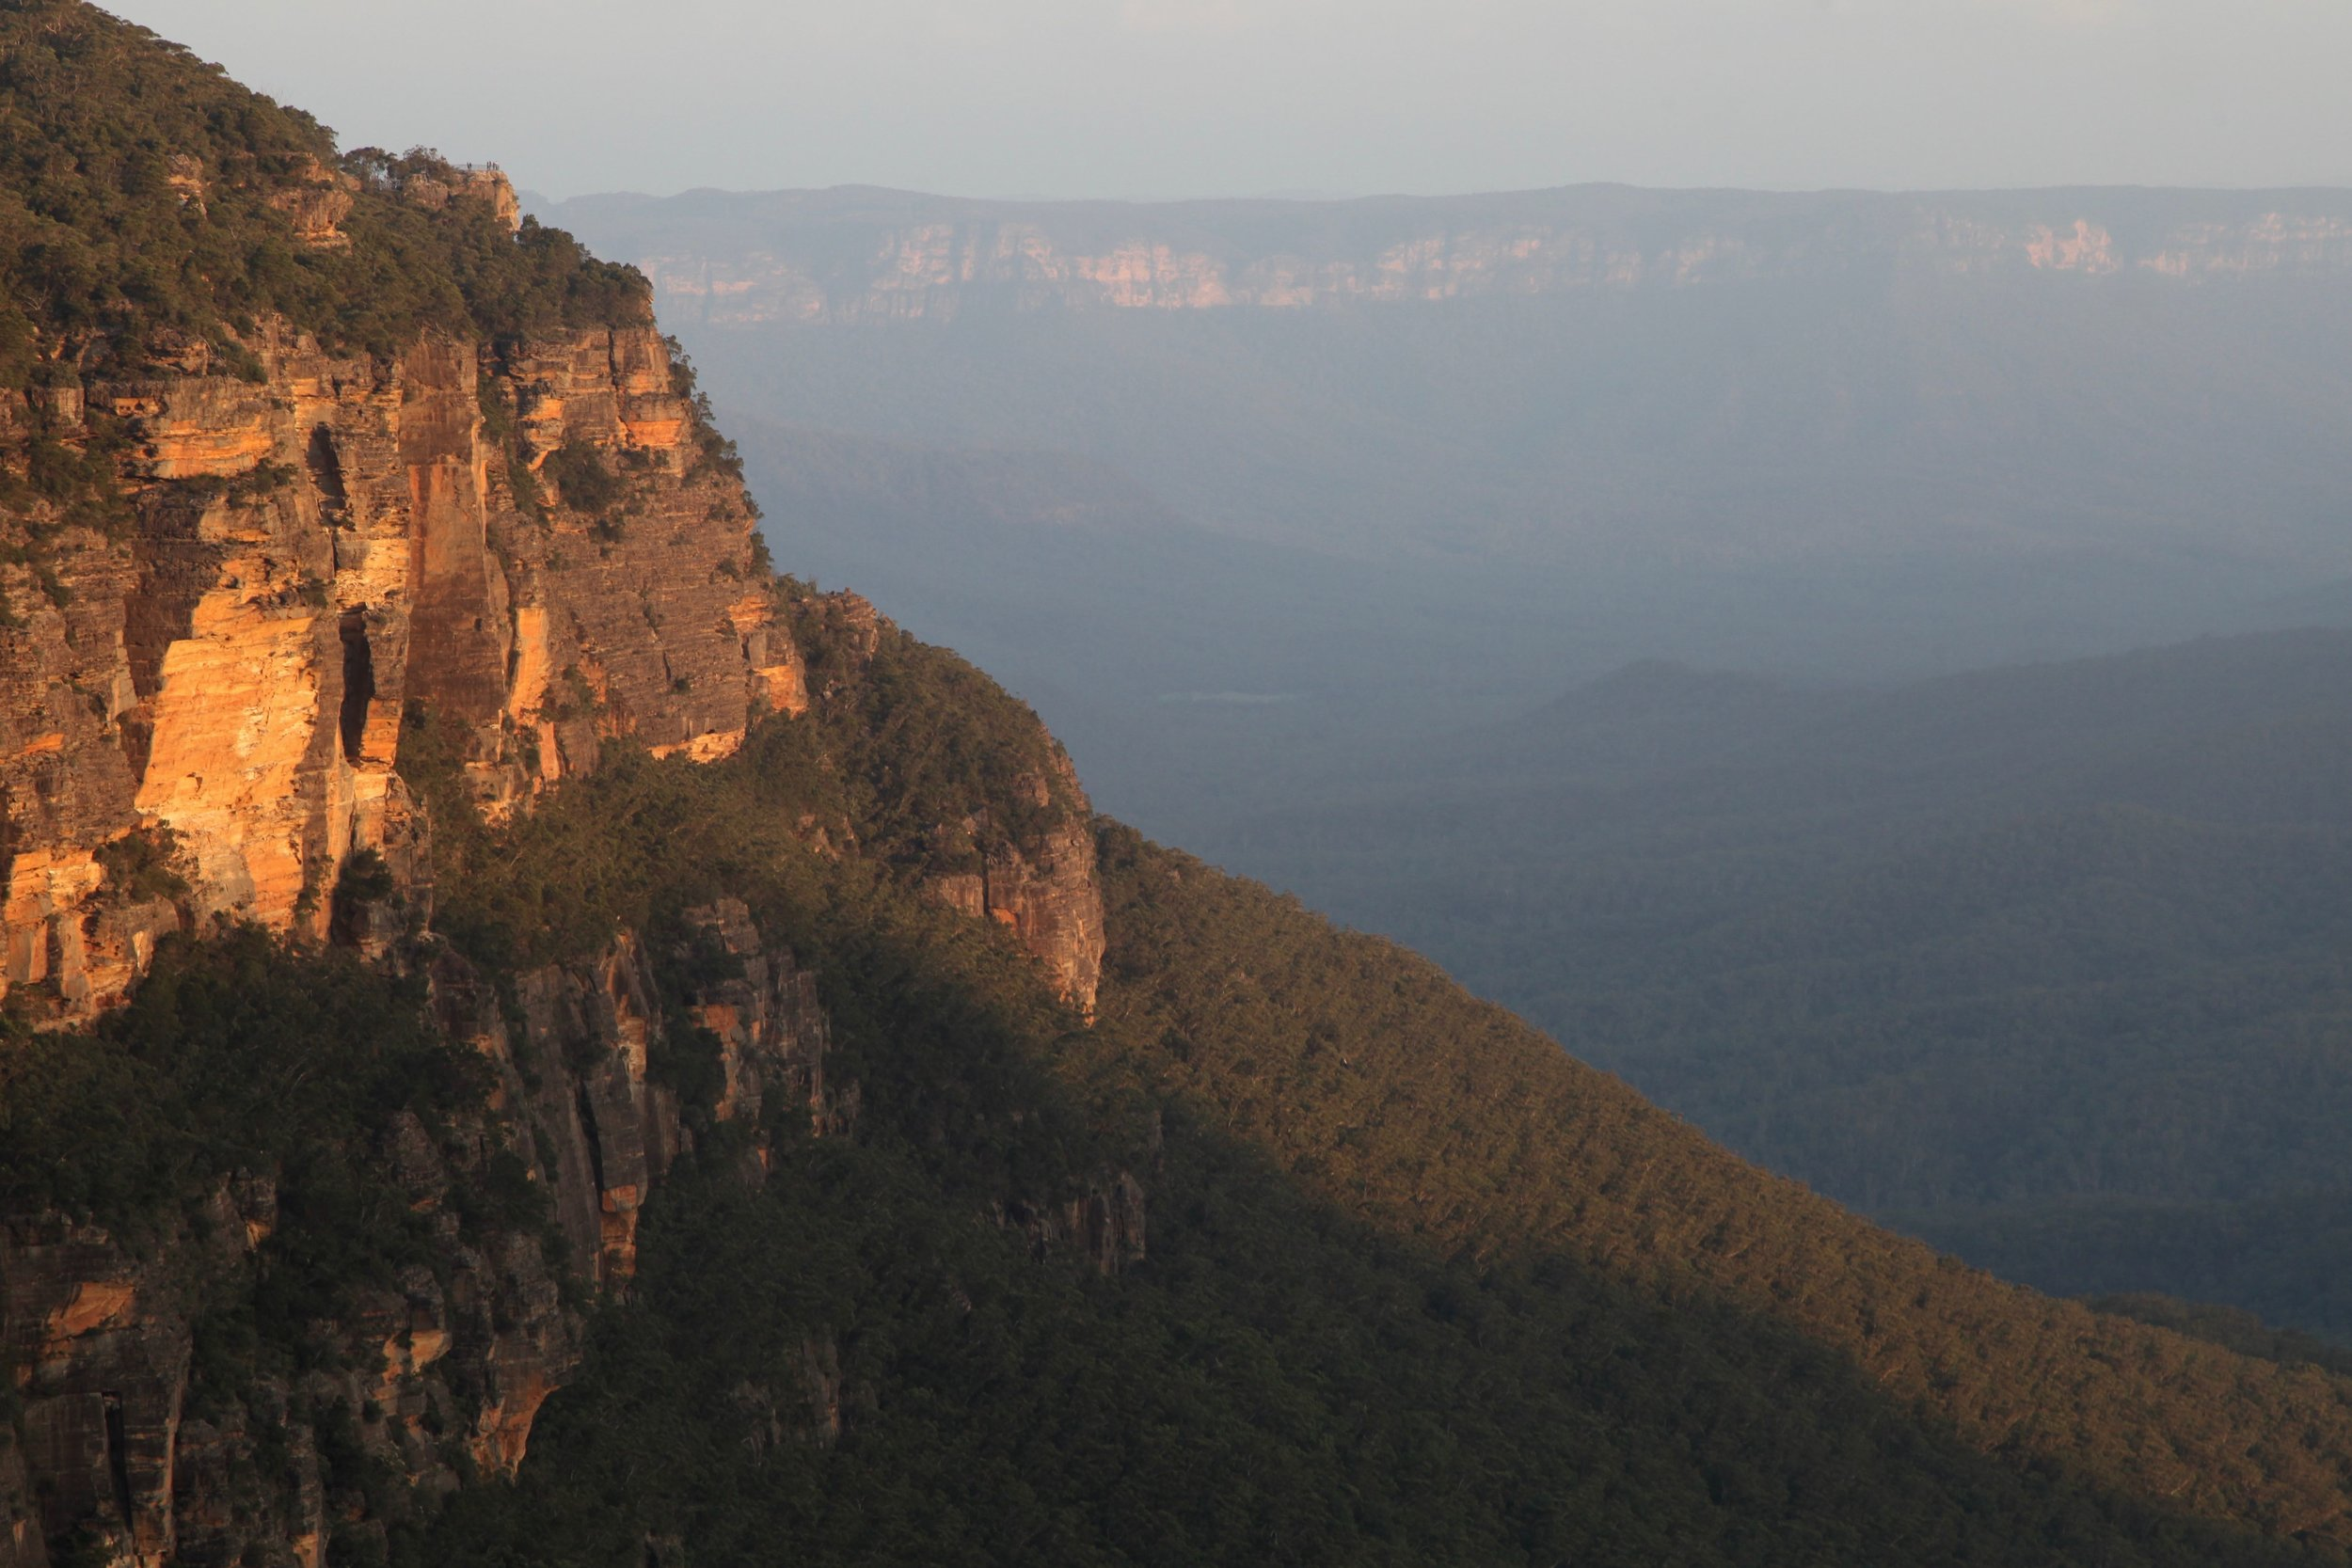 Take in sunset from one of the lookouts at Leura in the Blue Mountains.